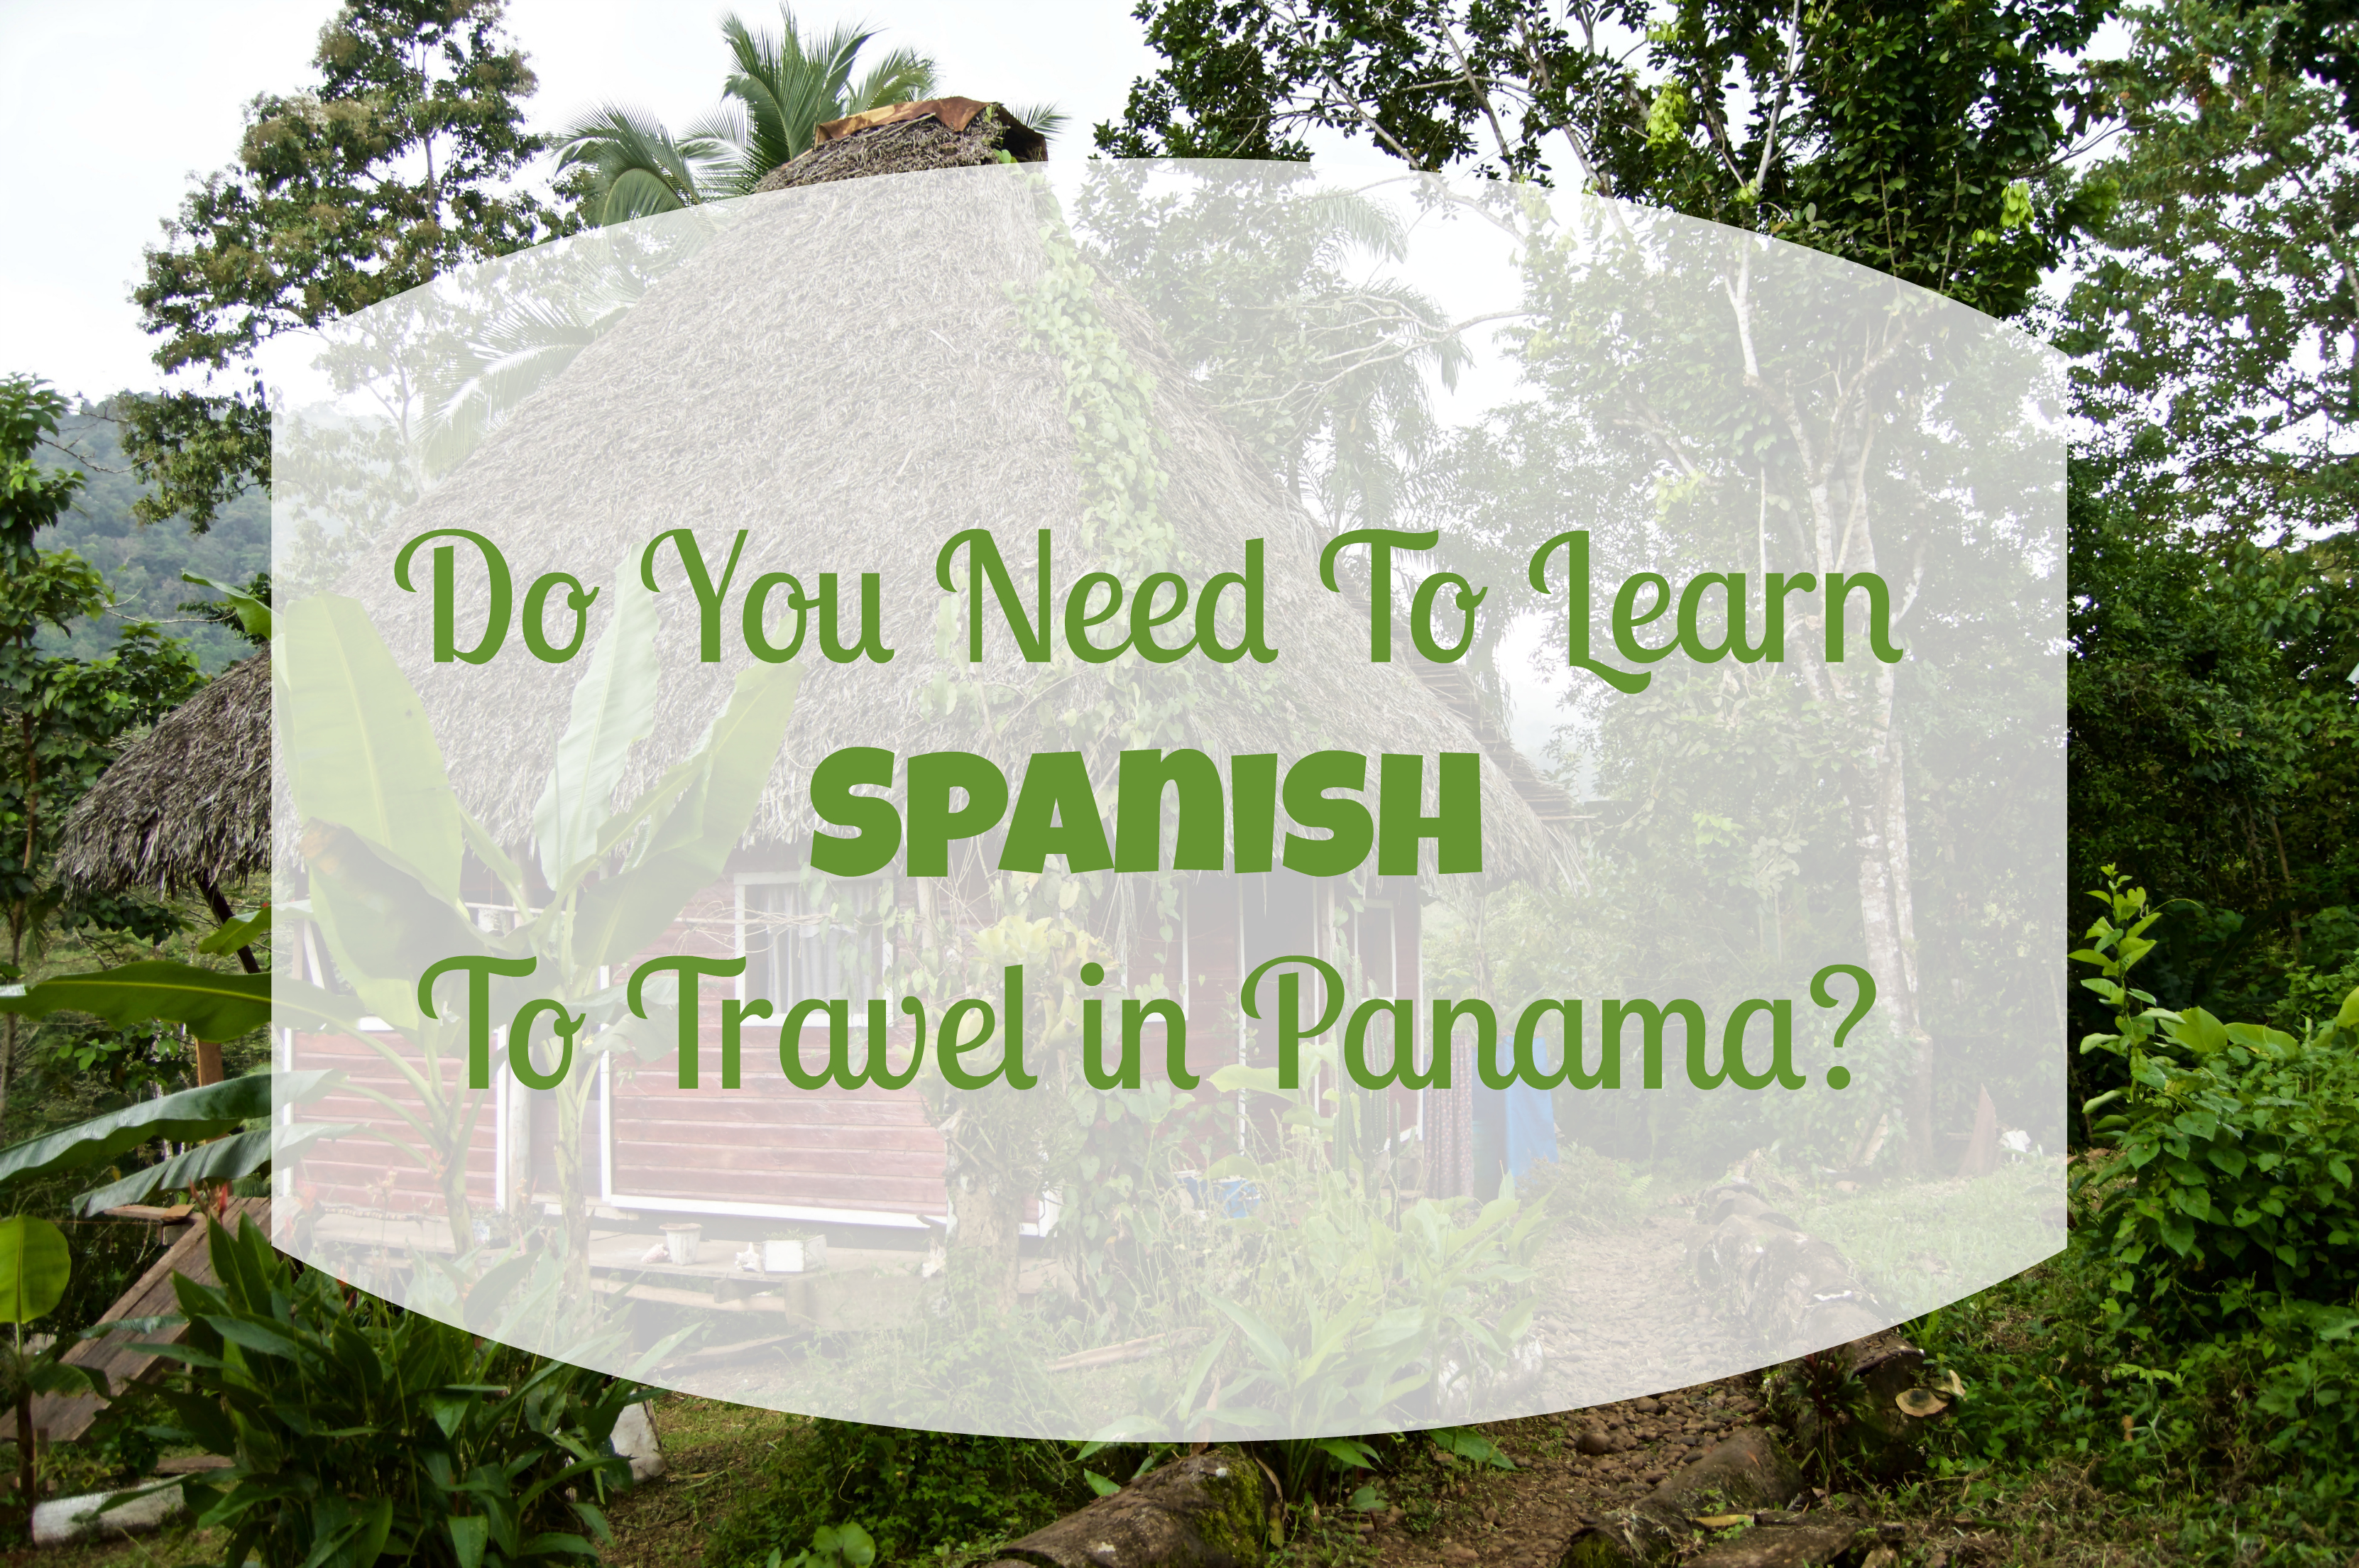 Do you need to learn spanish to travel in Panama?